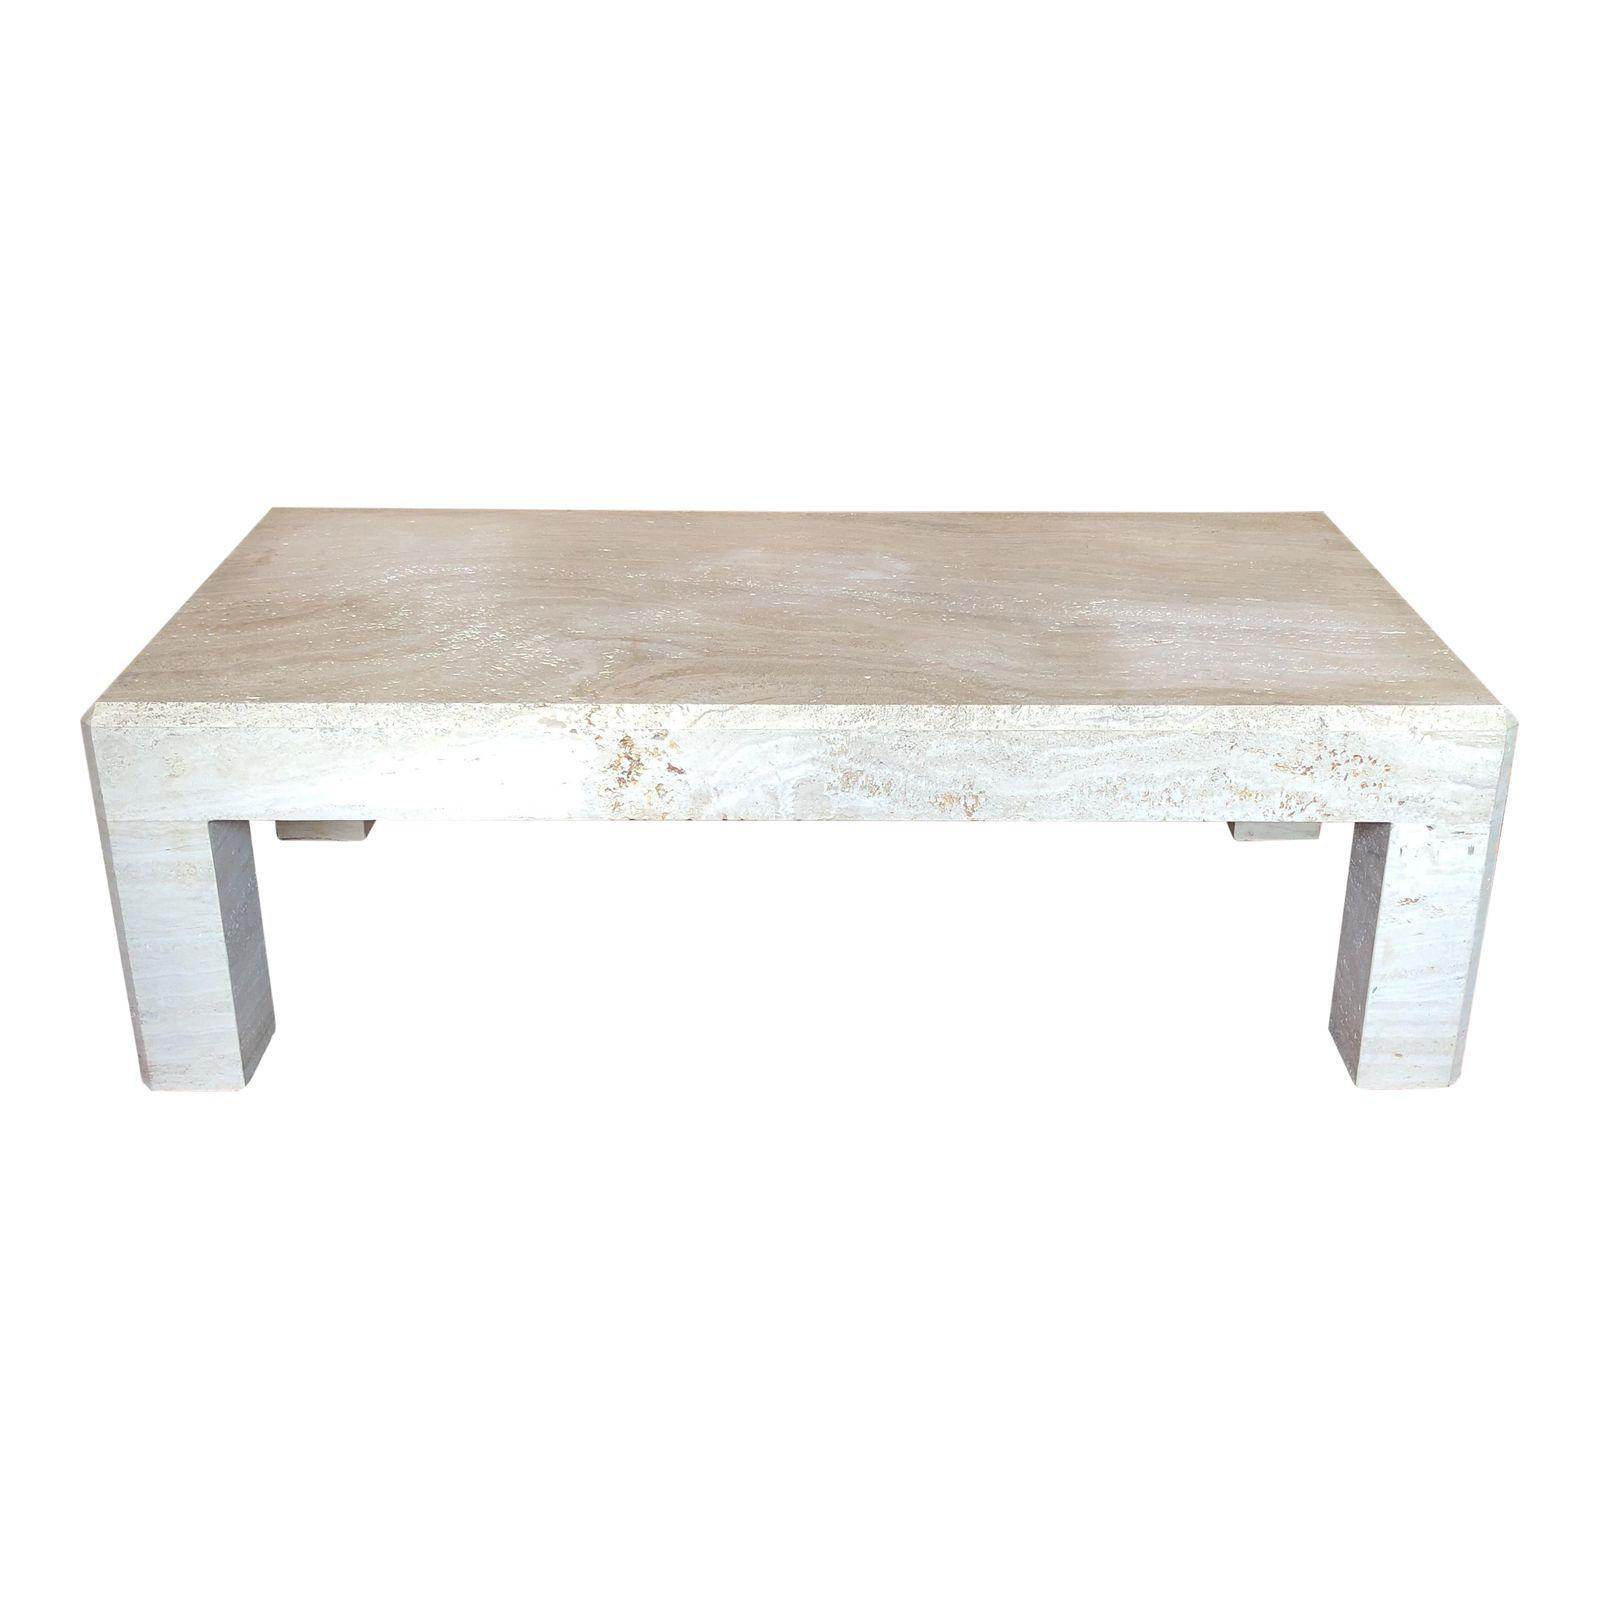 Travertine Slab Coffee Table: Kreiss Collection Travertine Coffee Table